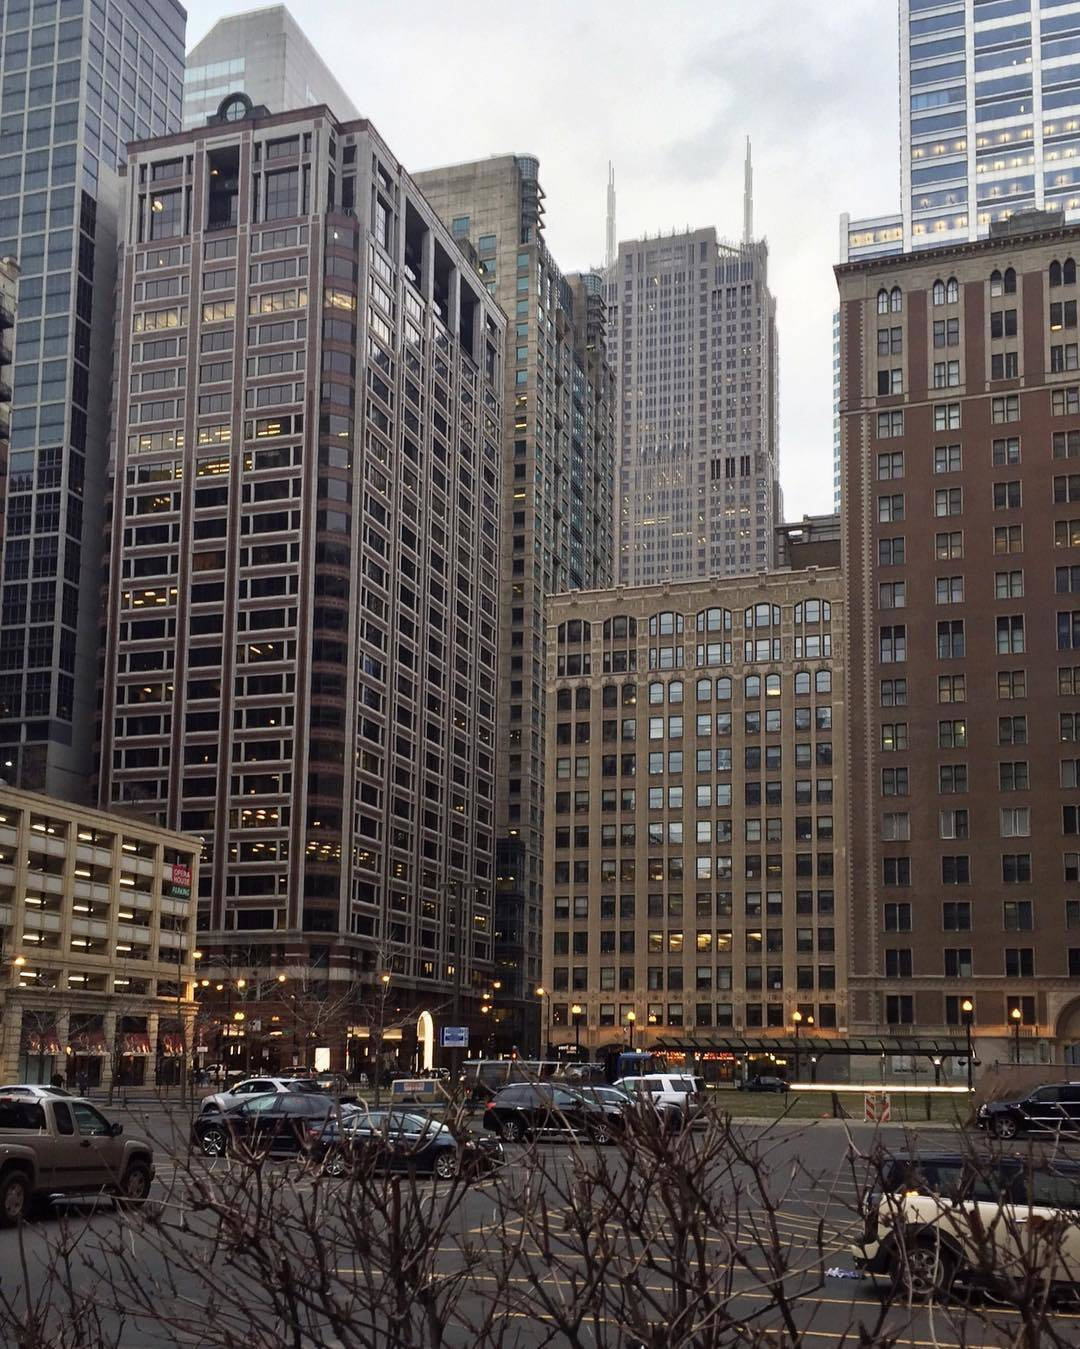 Overcast Morning in The Loop Chicago